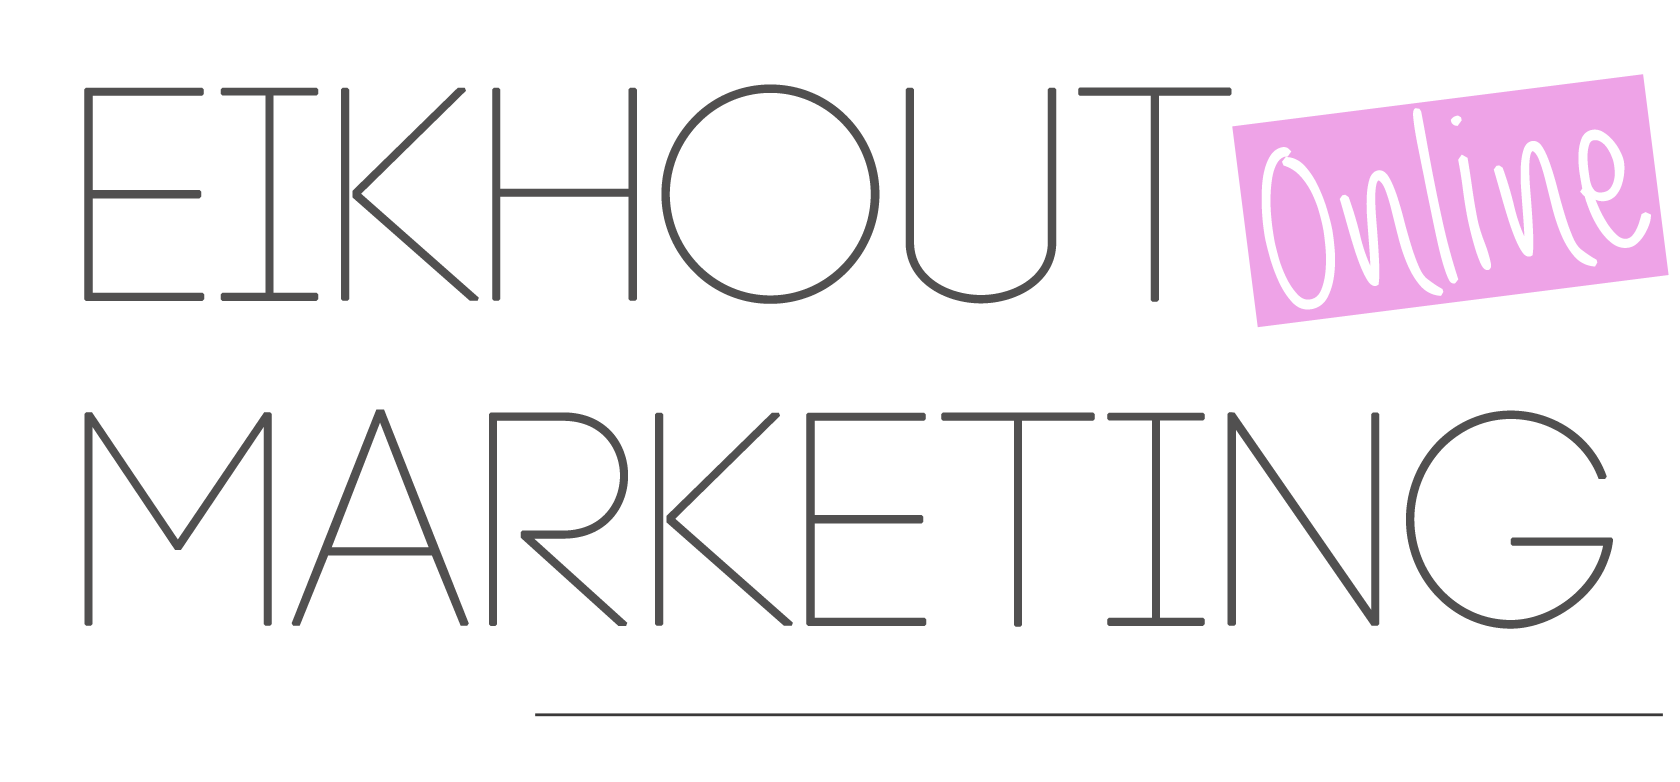 Eikhout Marketing - Webdesign